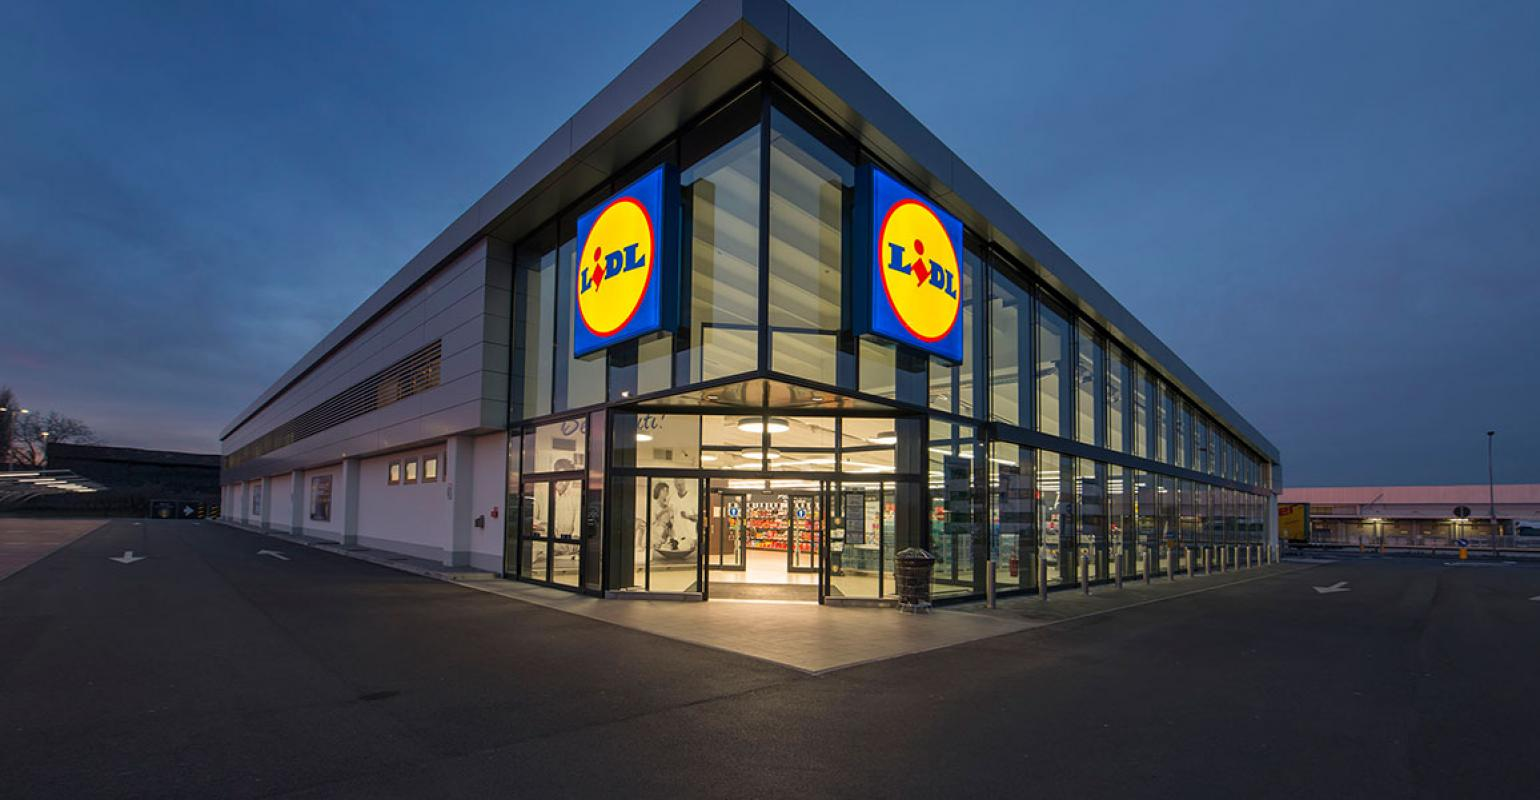 Lidl's Long Island strategy includes new builds and remodels